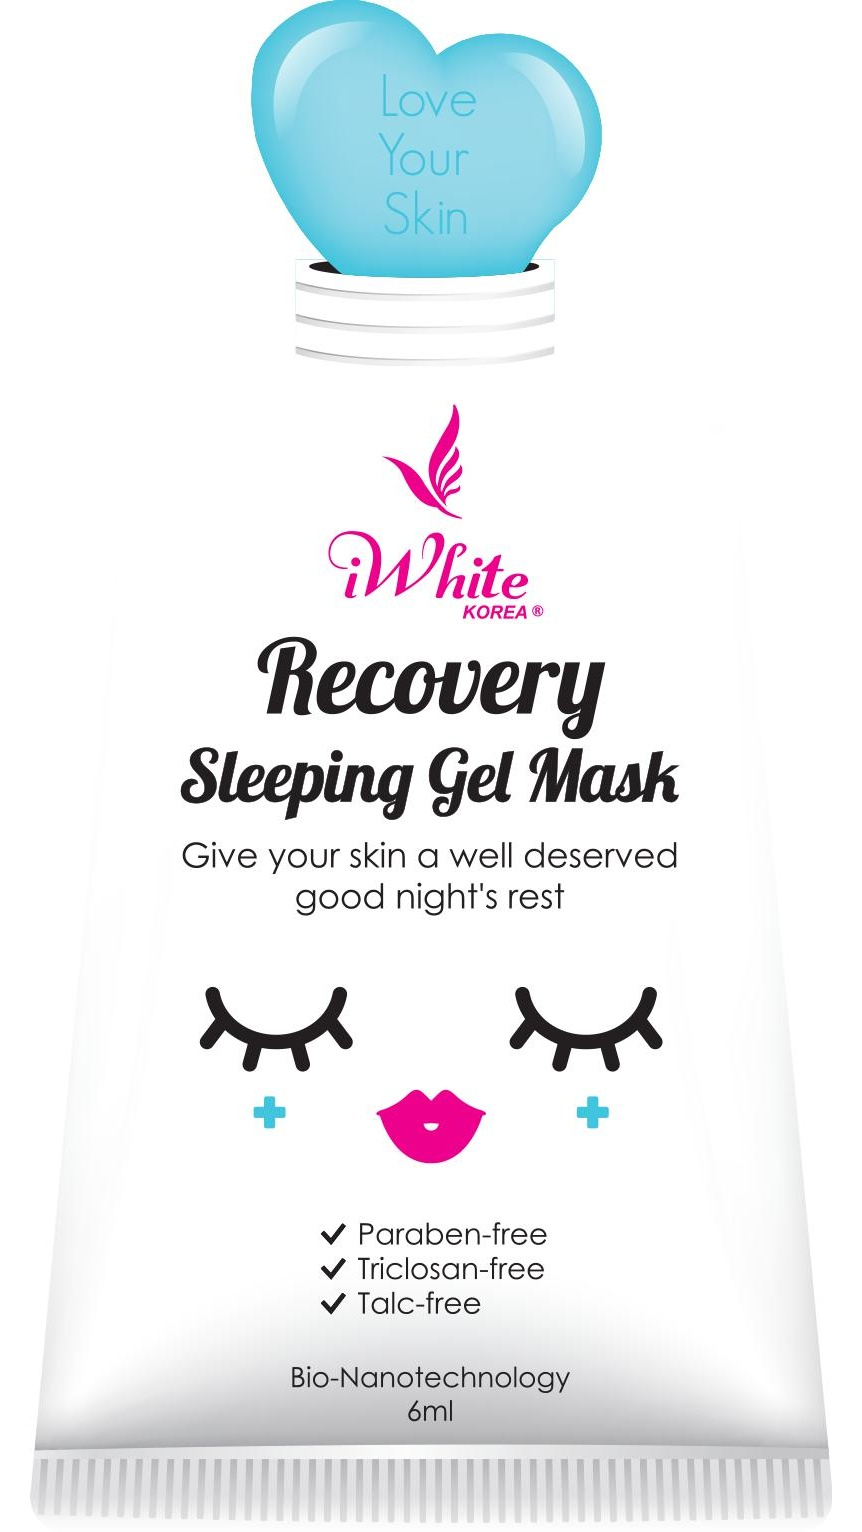 iWhite Korea Recovery Sleeping Gel Mask